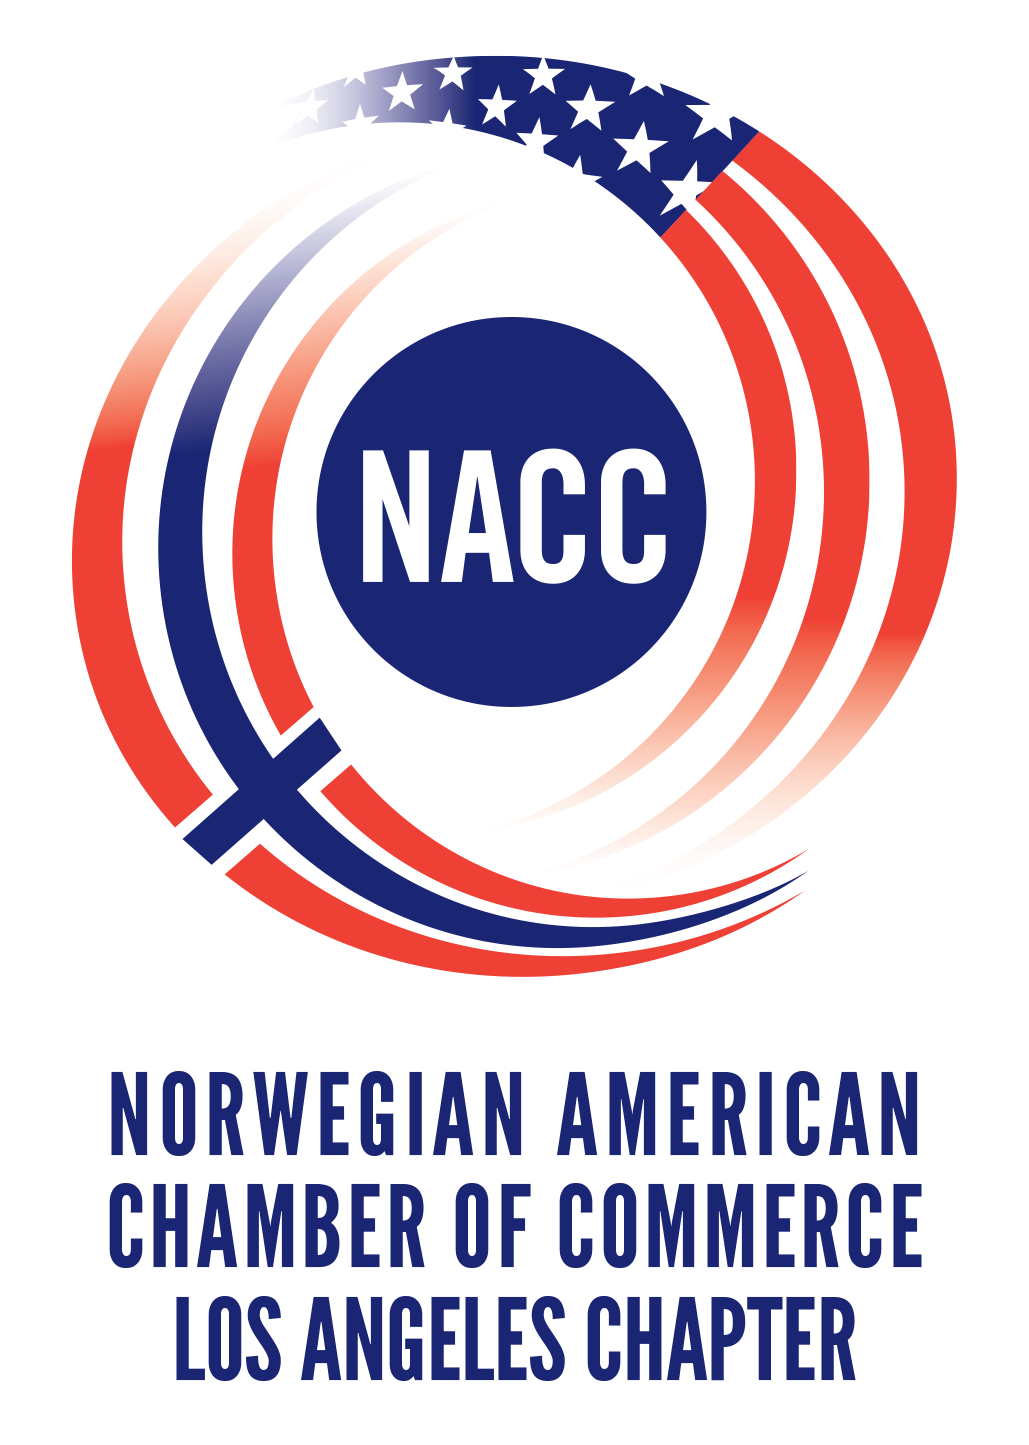 NACC_Logo_Los_Angeles_Chapter_2018.png